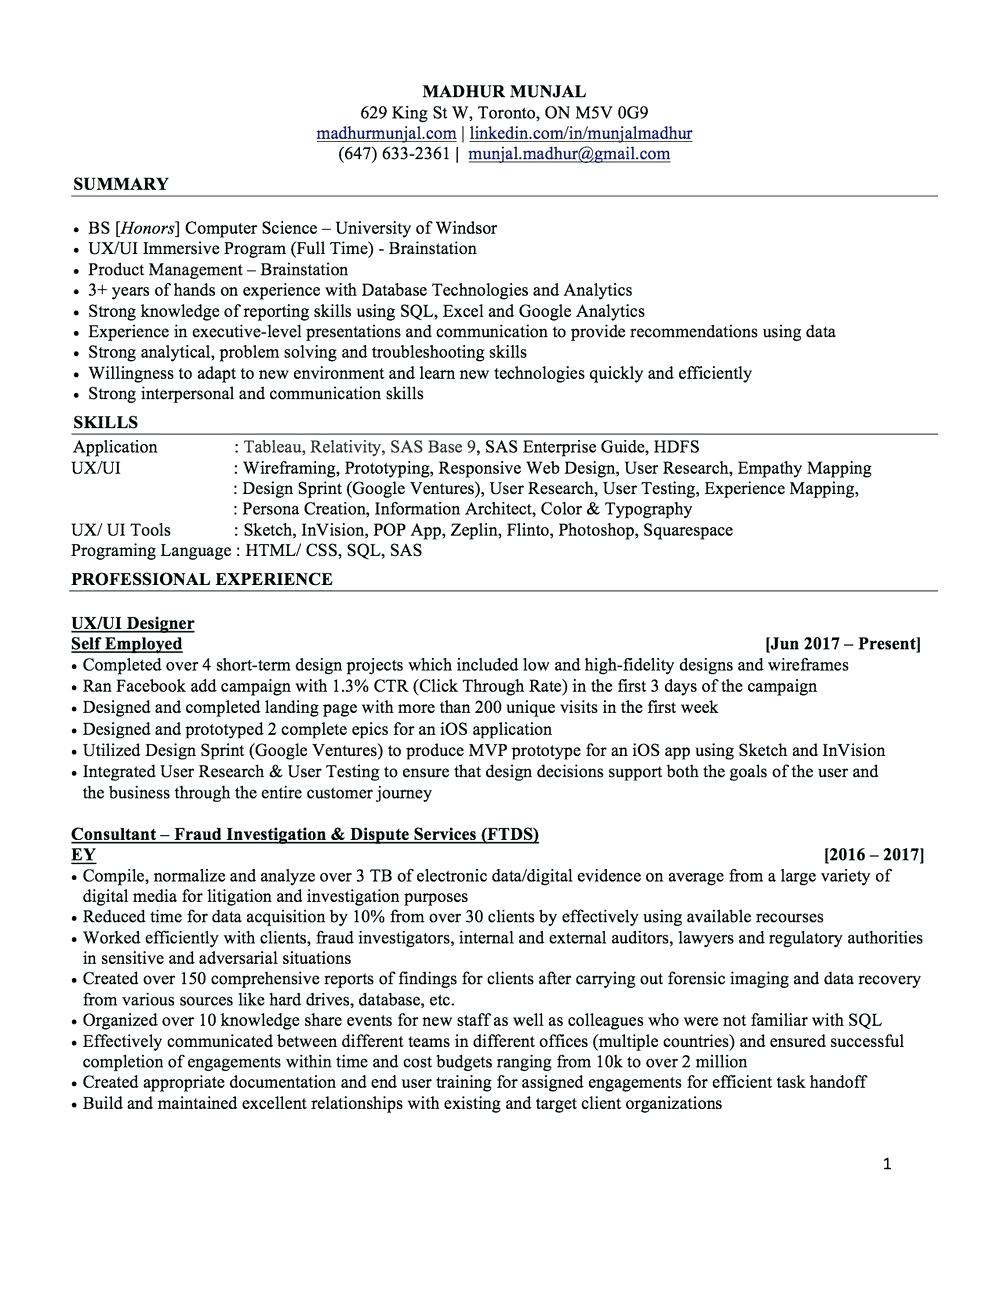 Tableau Experience Resume - Tableau Resume In Examples Resumes for 3 Years Experience